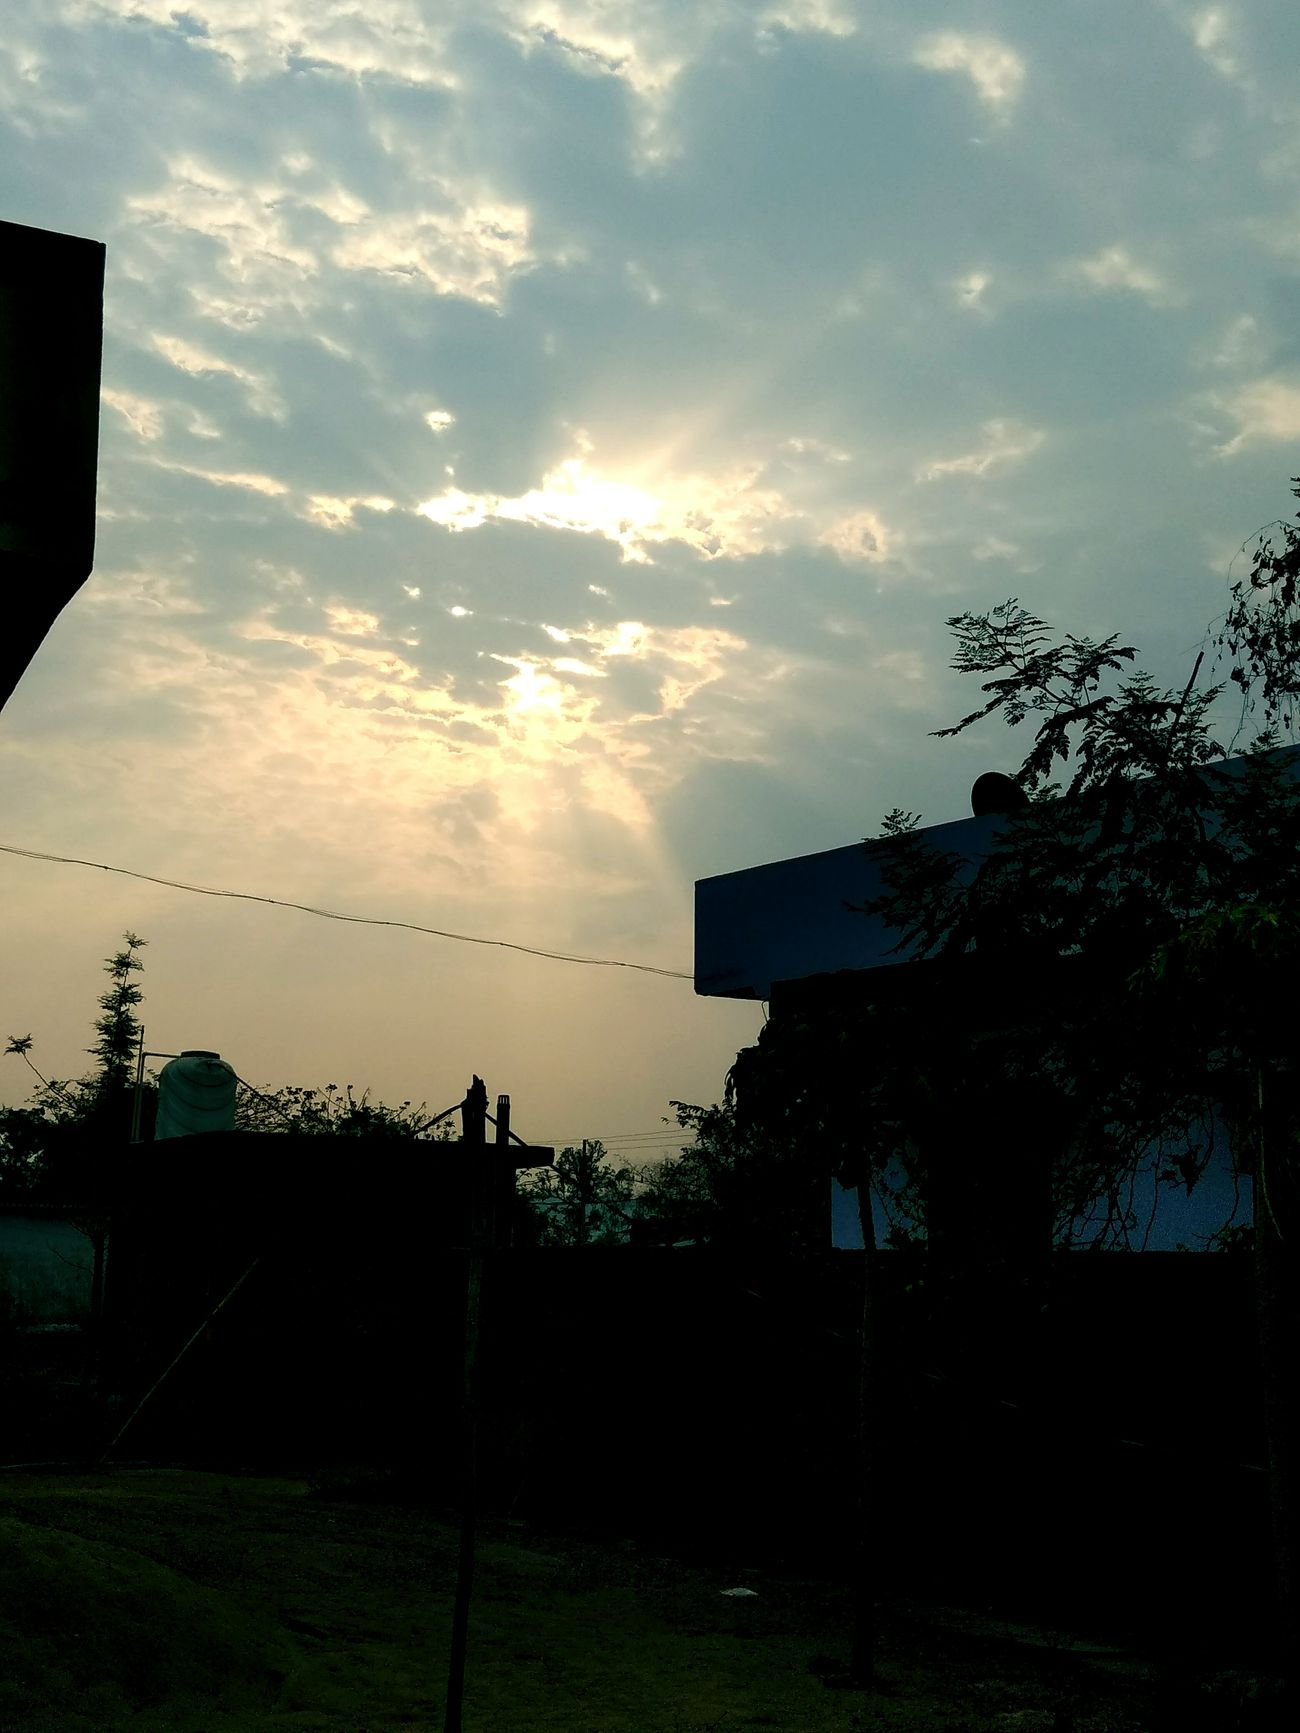 Sun rise 🌼 morning click Cloud - Sky Sky Tree No People Building Exterior Outdoors Day Awesome_shots Lovedit Architecture